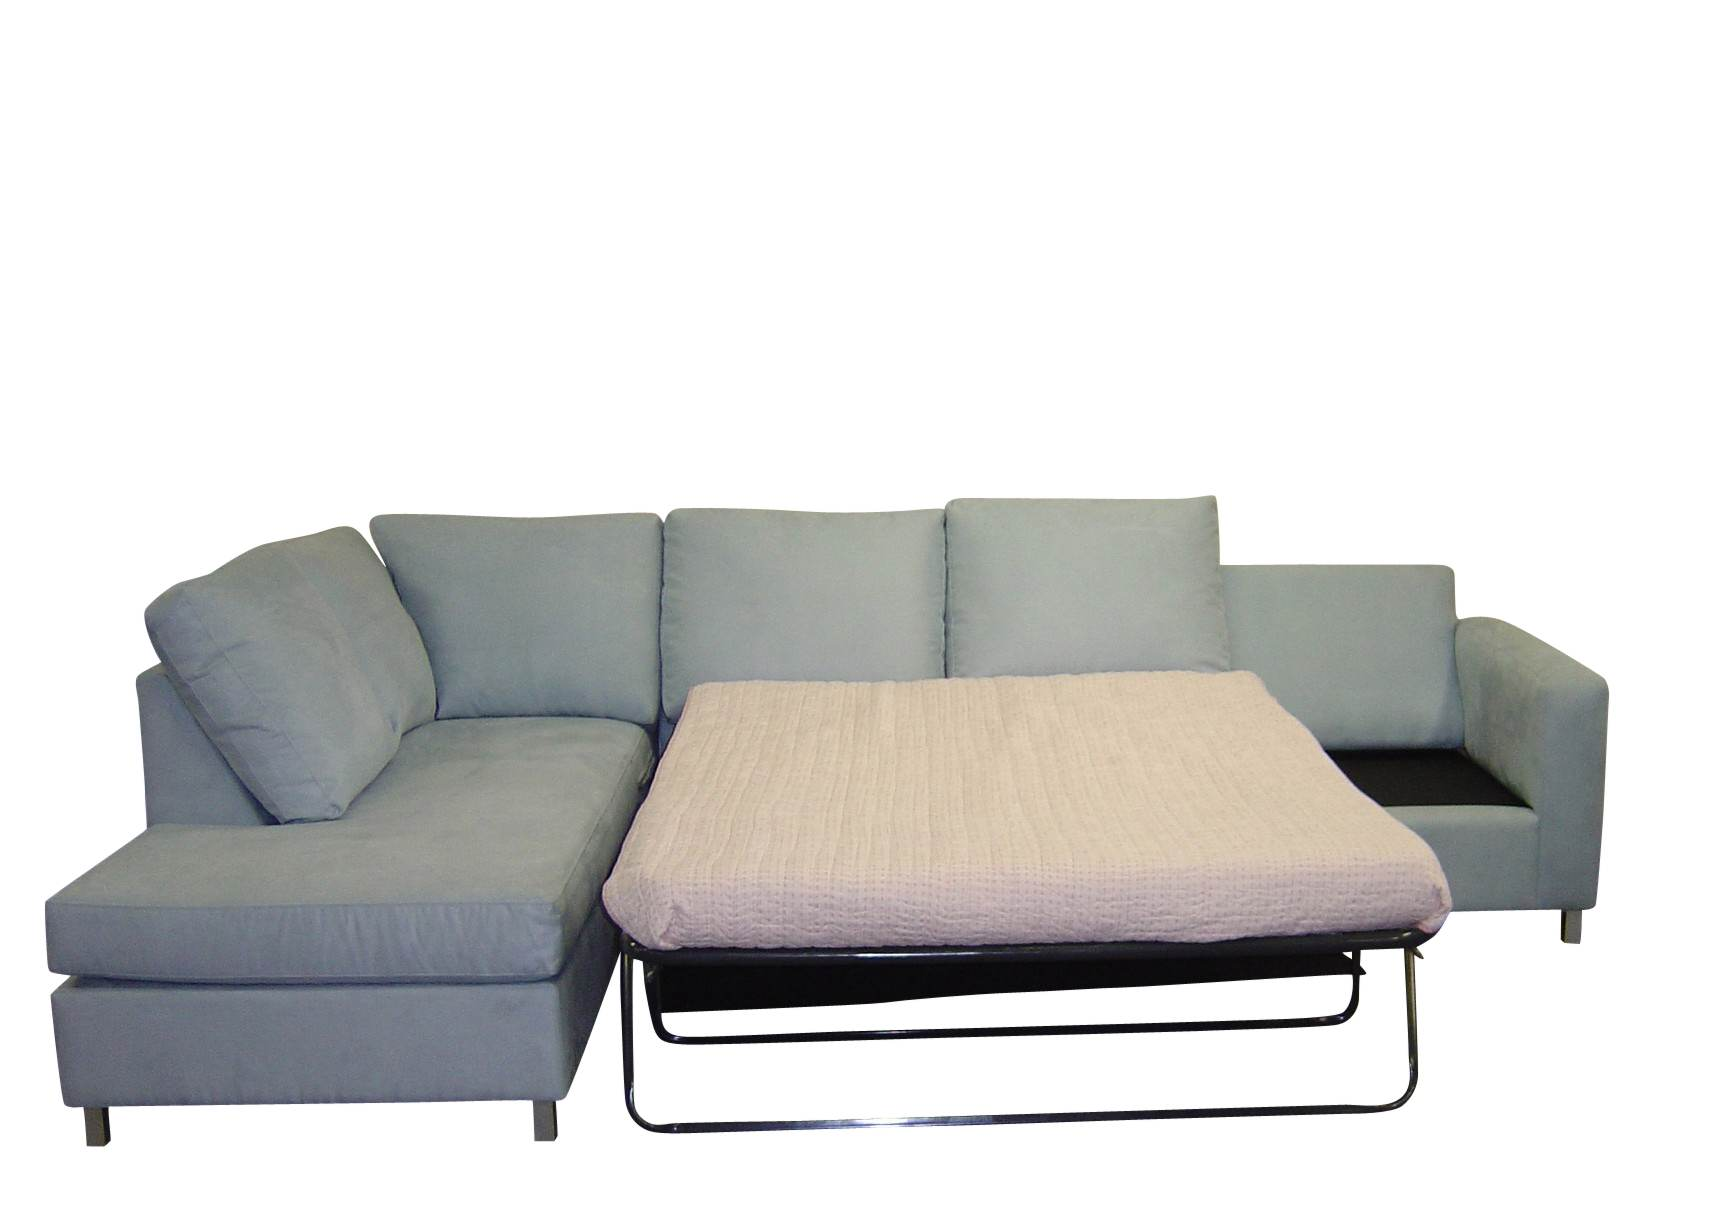 Sydney modular sofabed or sofa sofa bed specialists for Furniture sofa bed